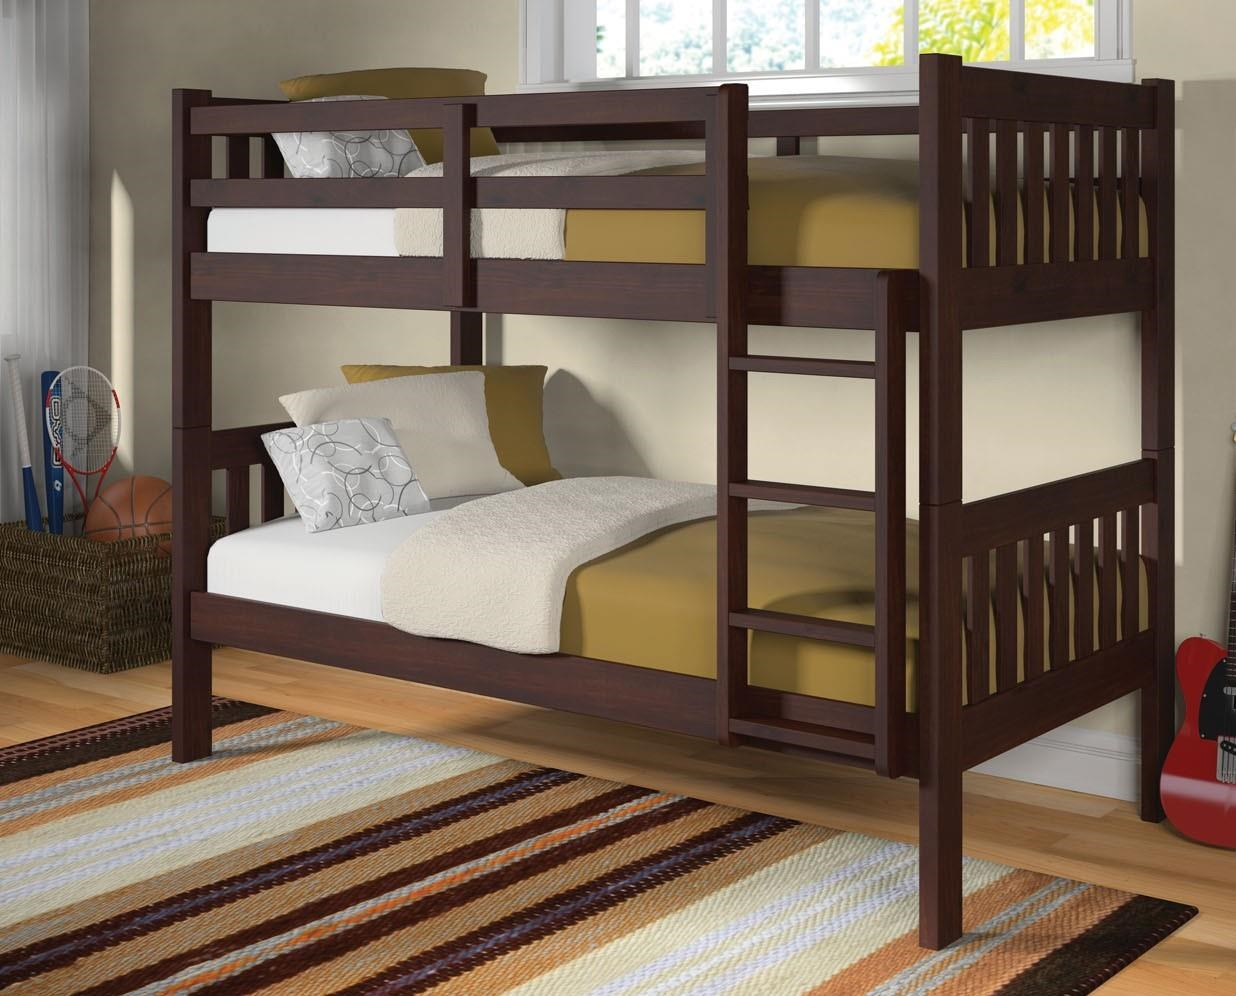 1010 Cappucino Twin over Twin Bunk bed by Donco Trading Co at Furniture Fair - North Carolina